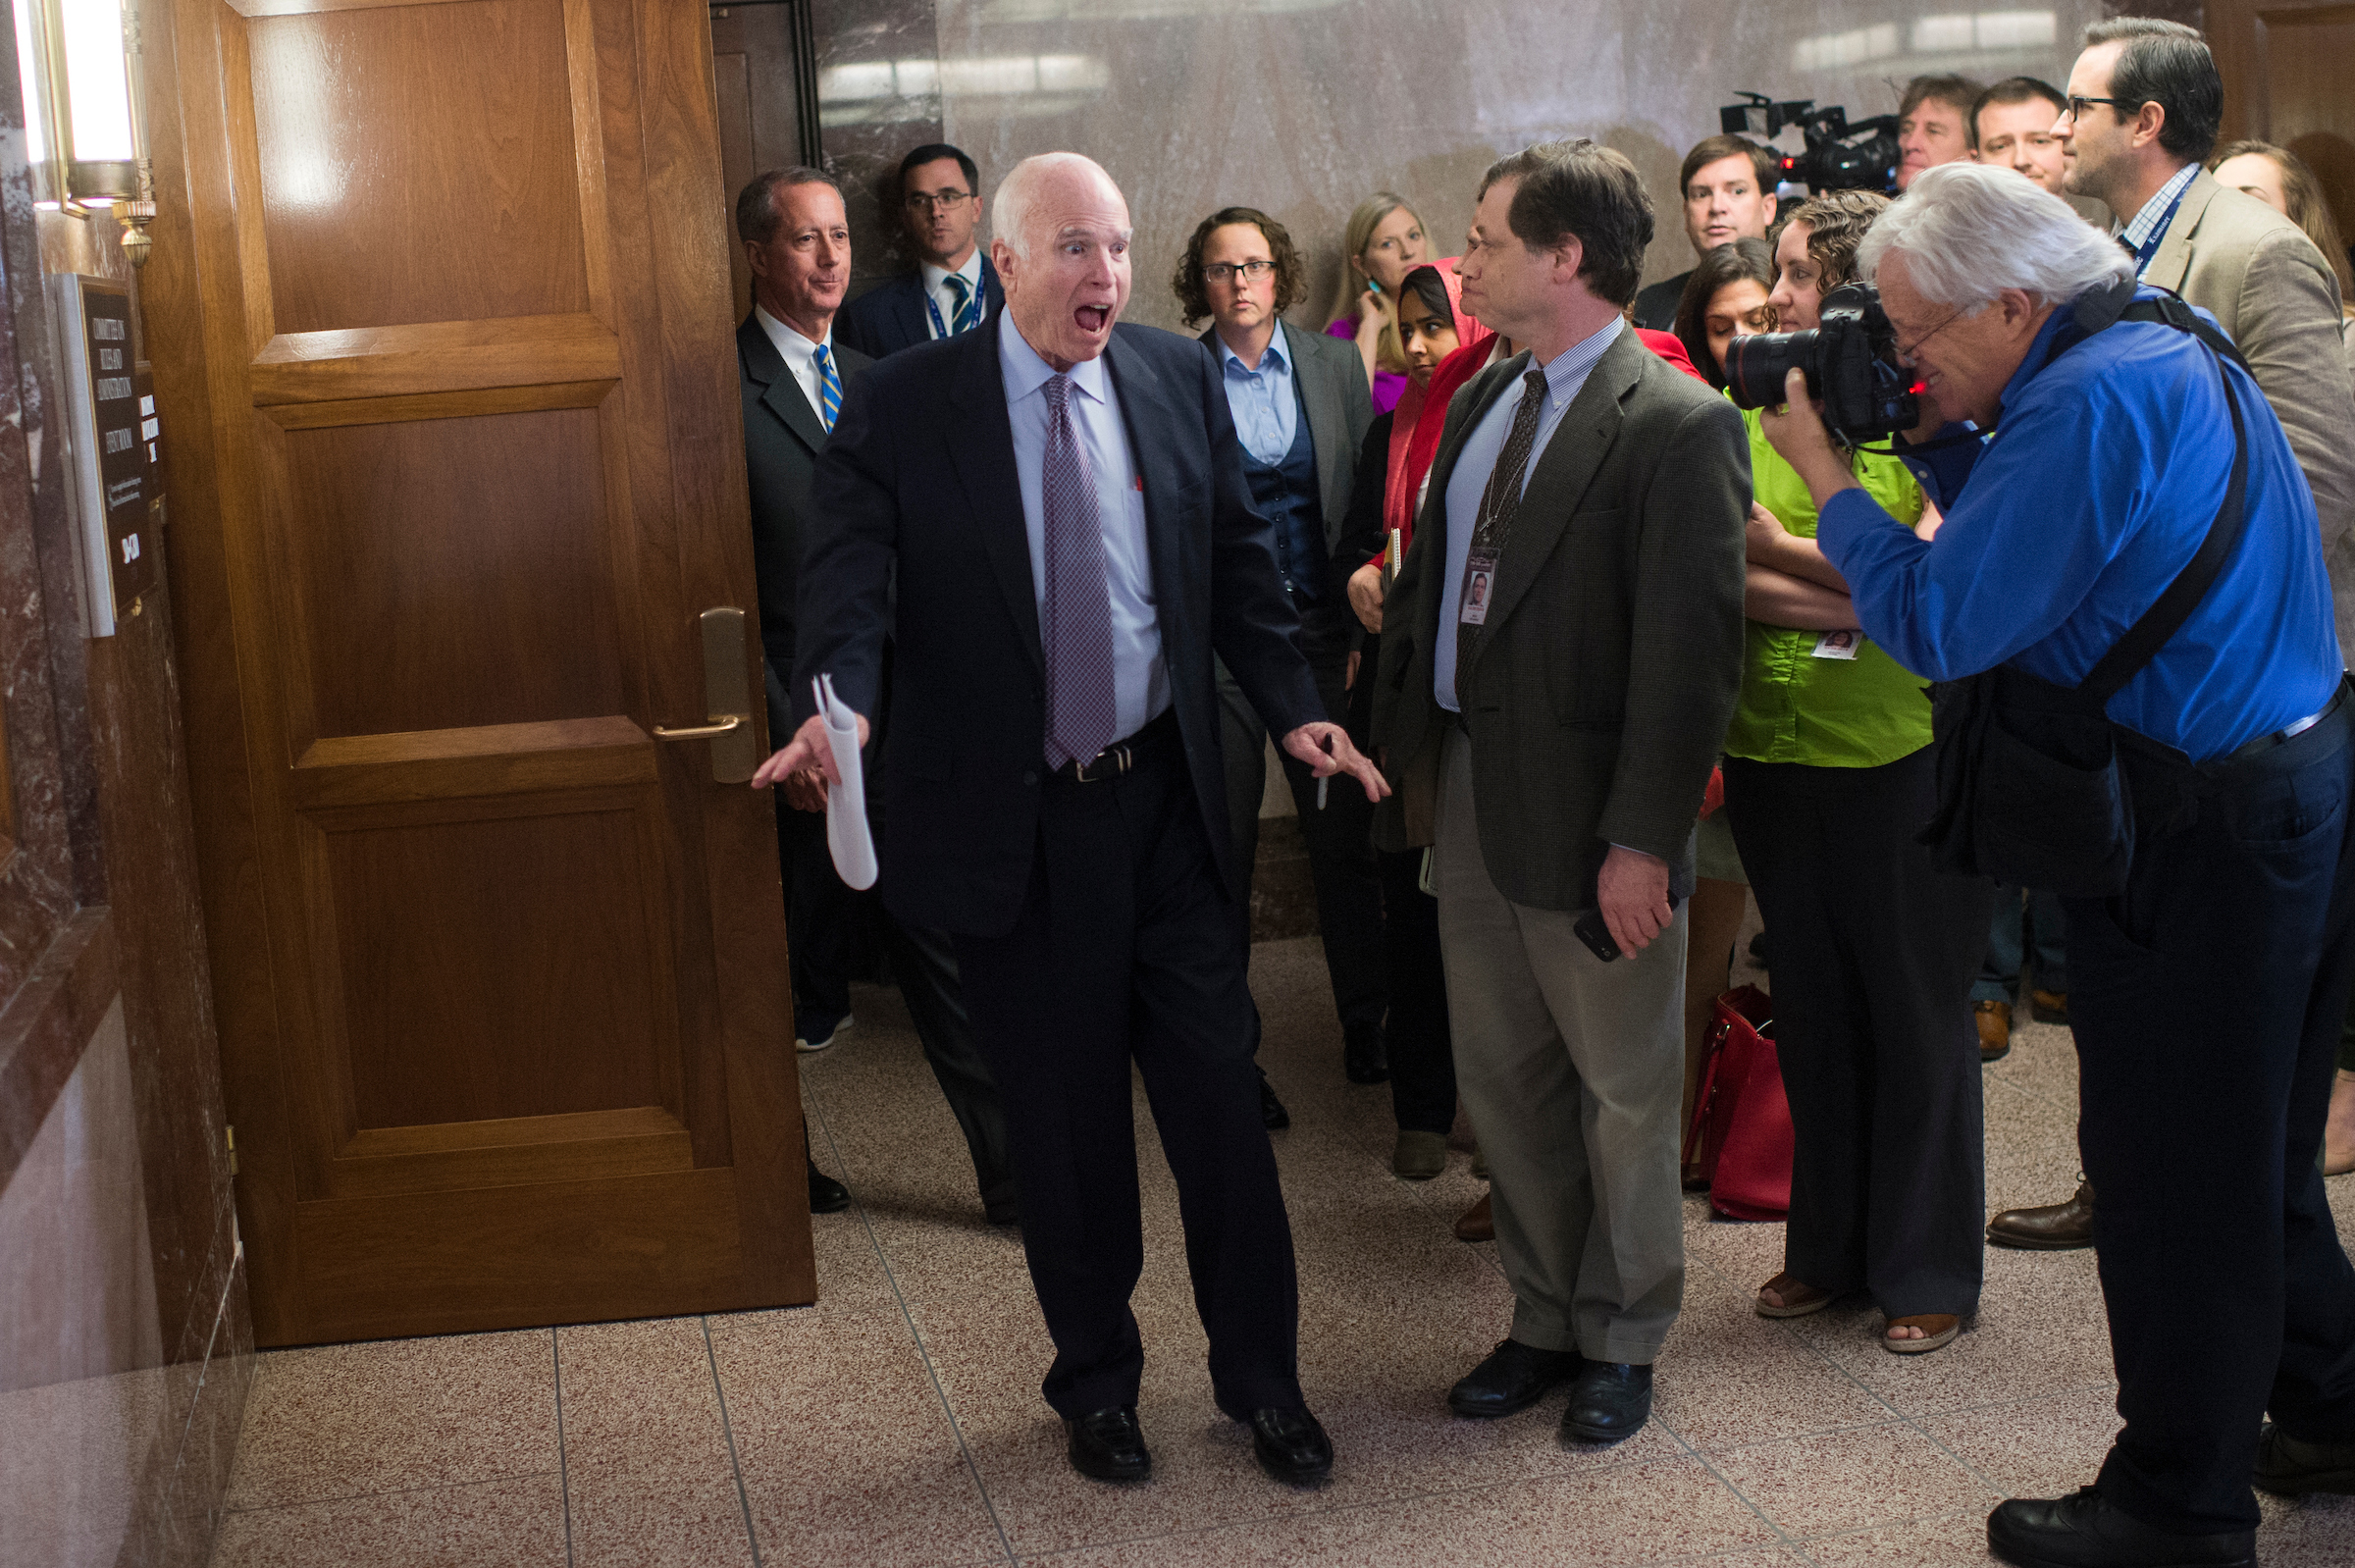 Senate Armed Services Committee Chairman John McCain, R-Ariz., center, and House Armed Services Committee Chairman Mac Thornberry, R-Texas, left, arrive for a news conference before a National Defense Authorization Act (NDAA) conferees meeting in Dirksen Building. (Tom Williams/CQ Roll Call)